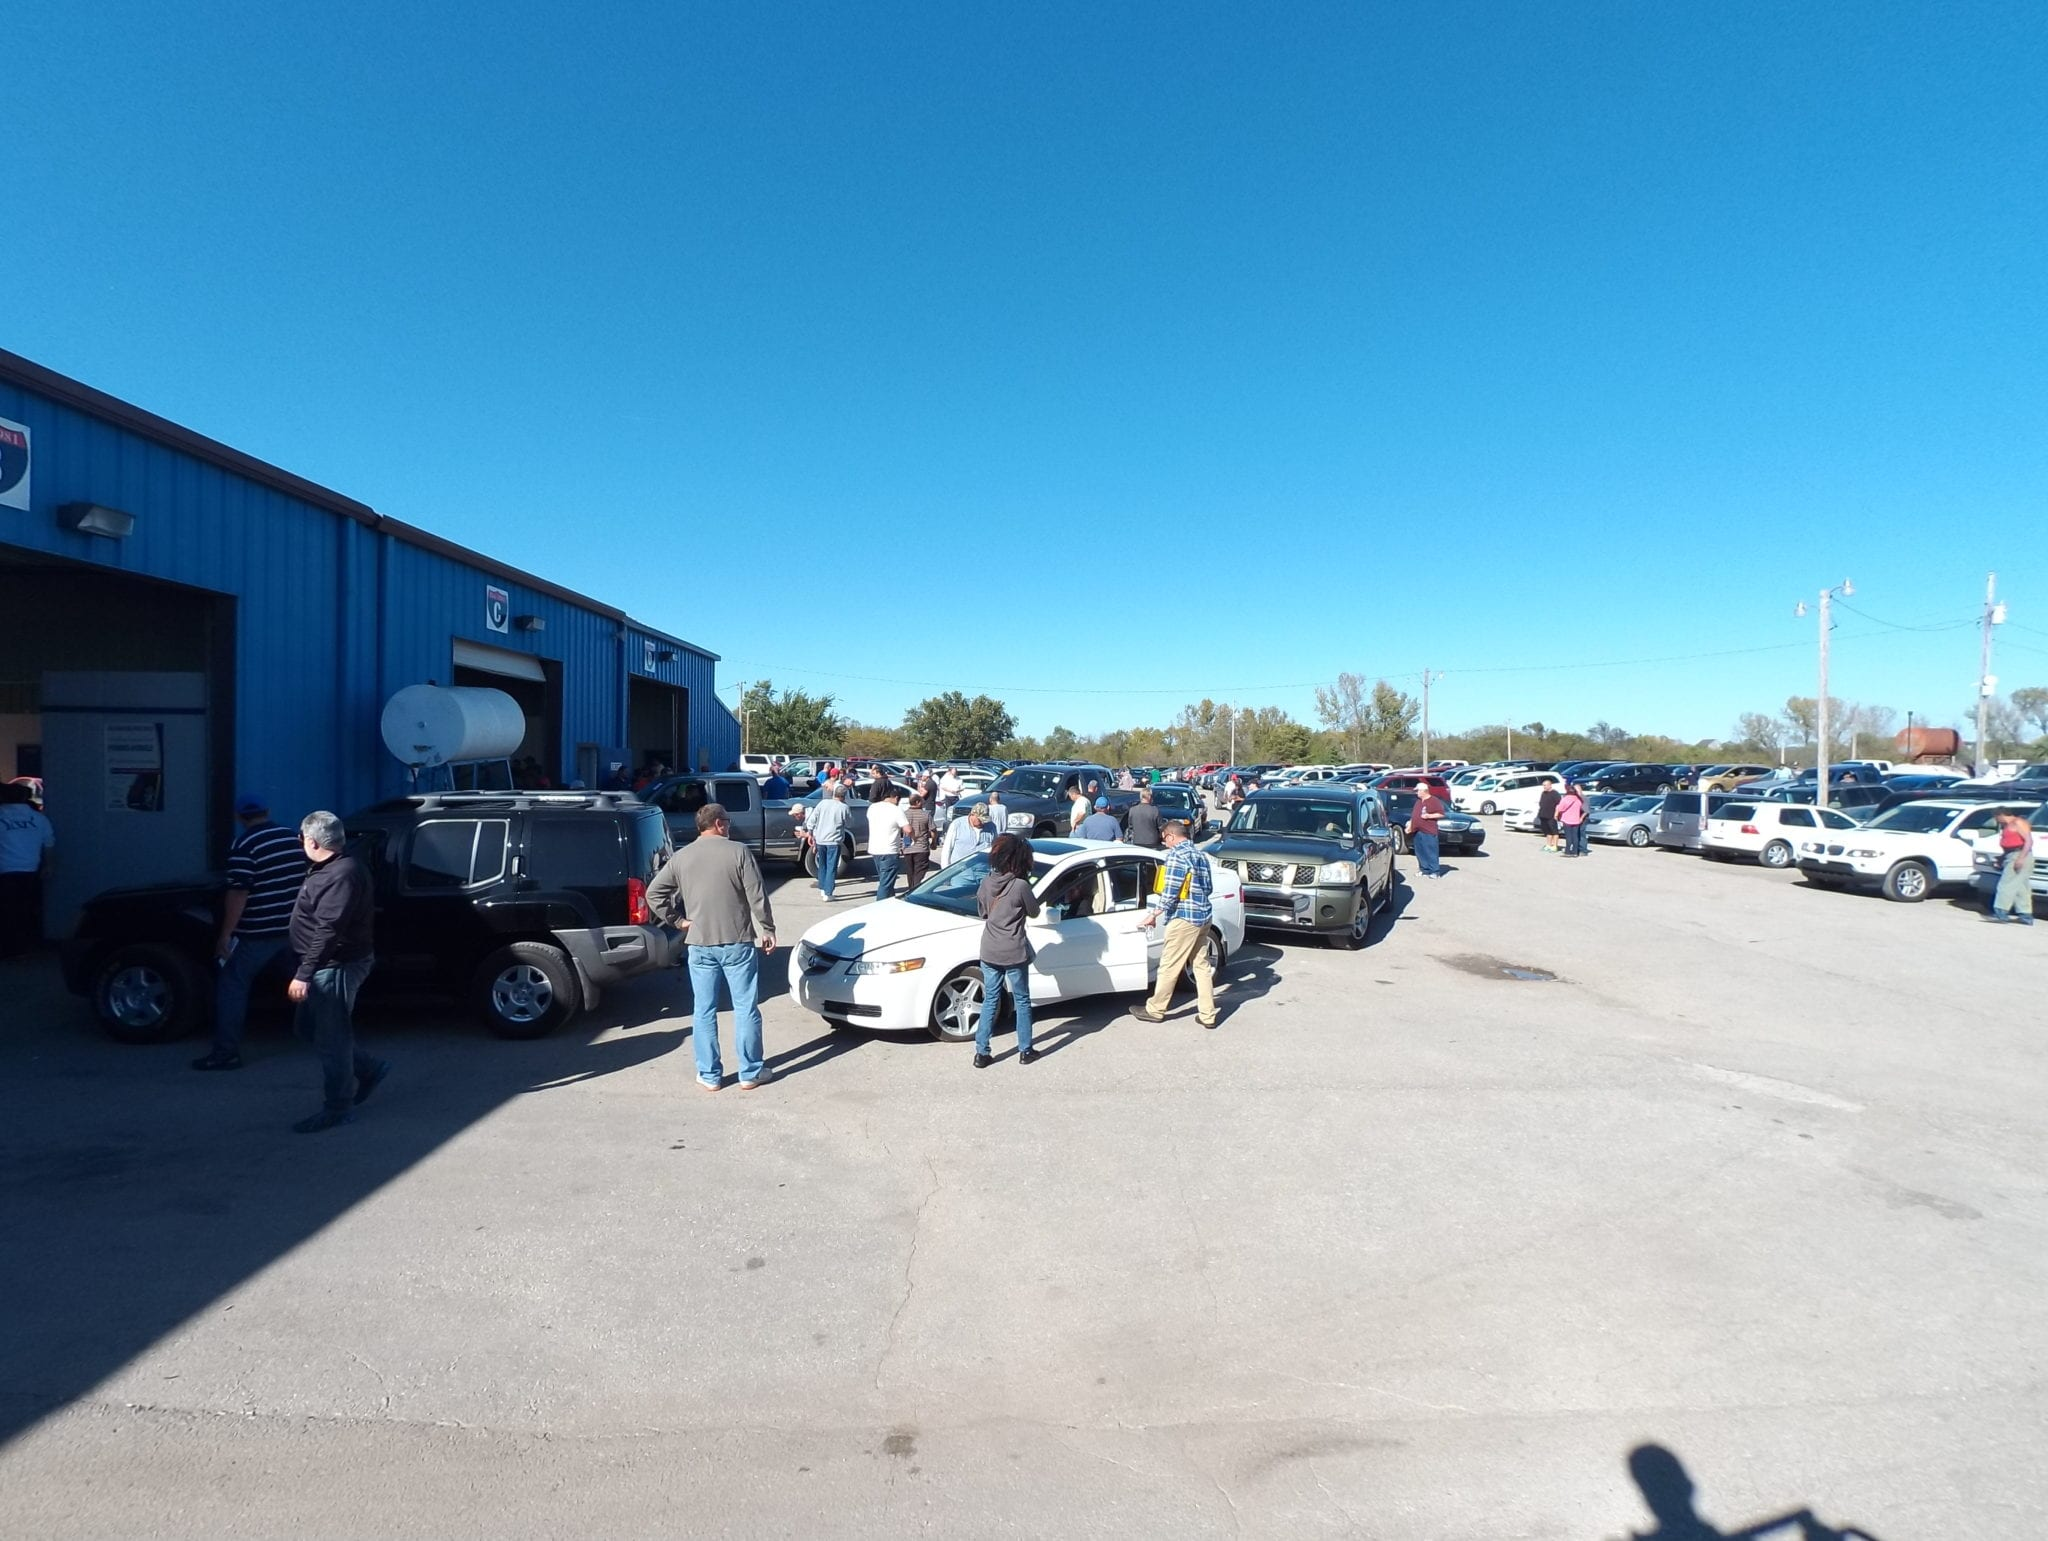 I-70 Auto Auction | Weekly Dealer Only Auto Auction in Topeka, KS